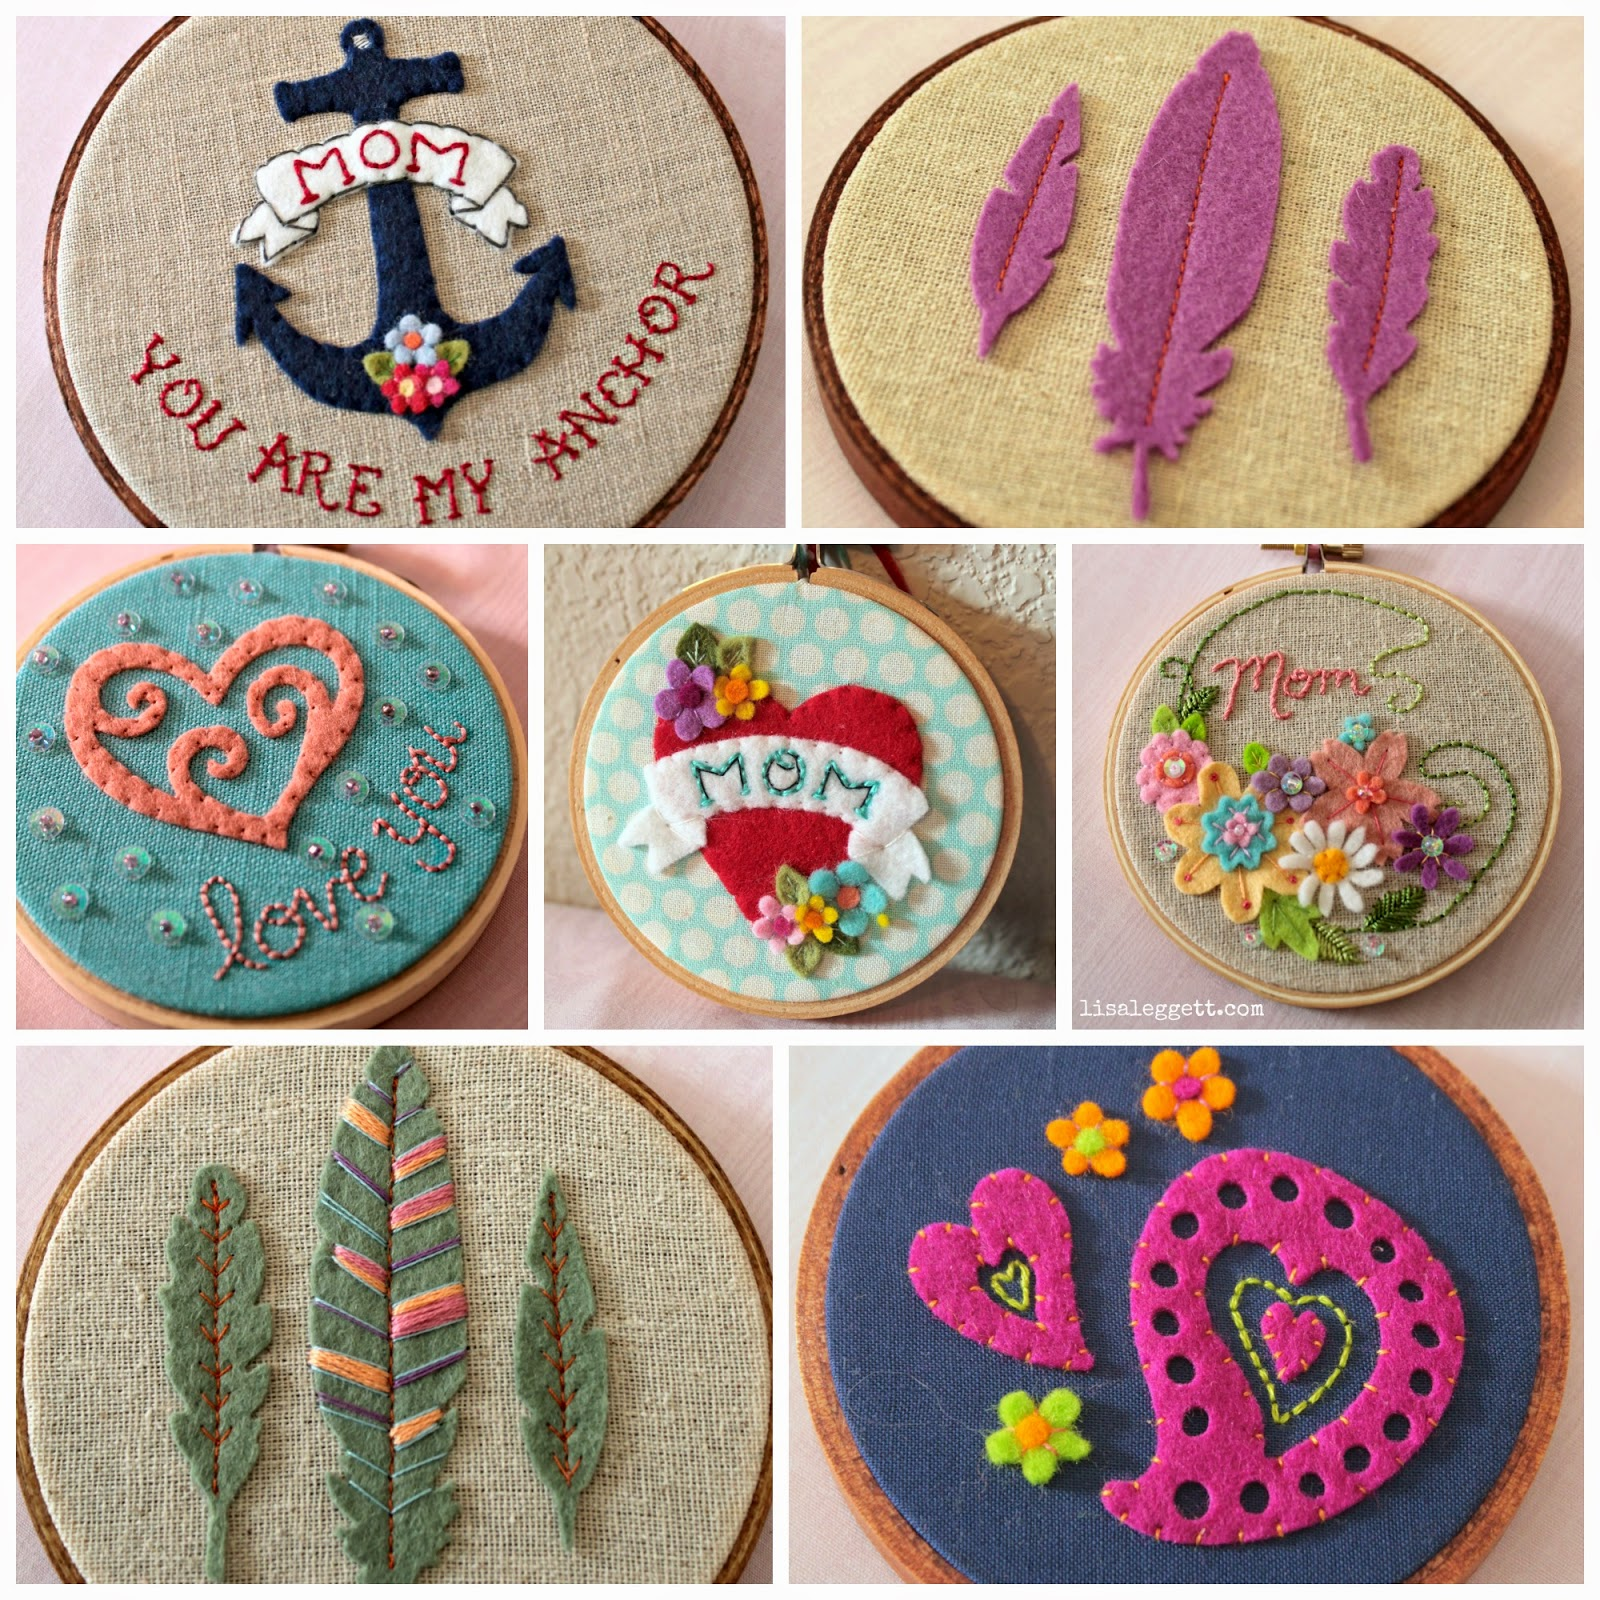 Felt & Embroidered Hoopla's by Lisa Leggett